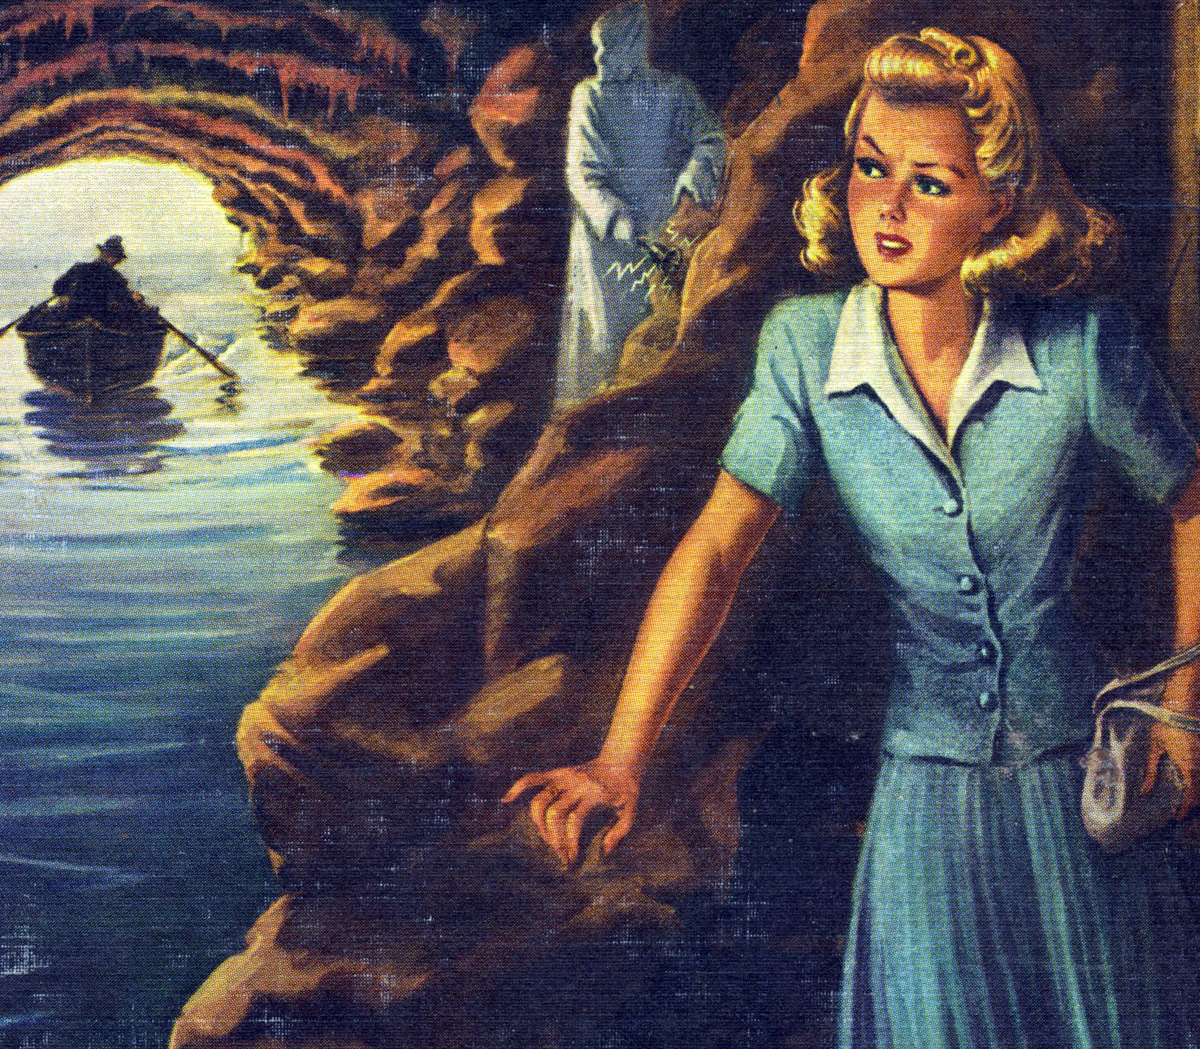 The Mystery of the Tolling Bell, courtesy of the Nancy Drew Research Institute